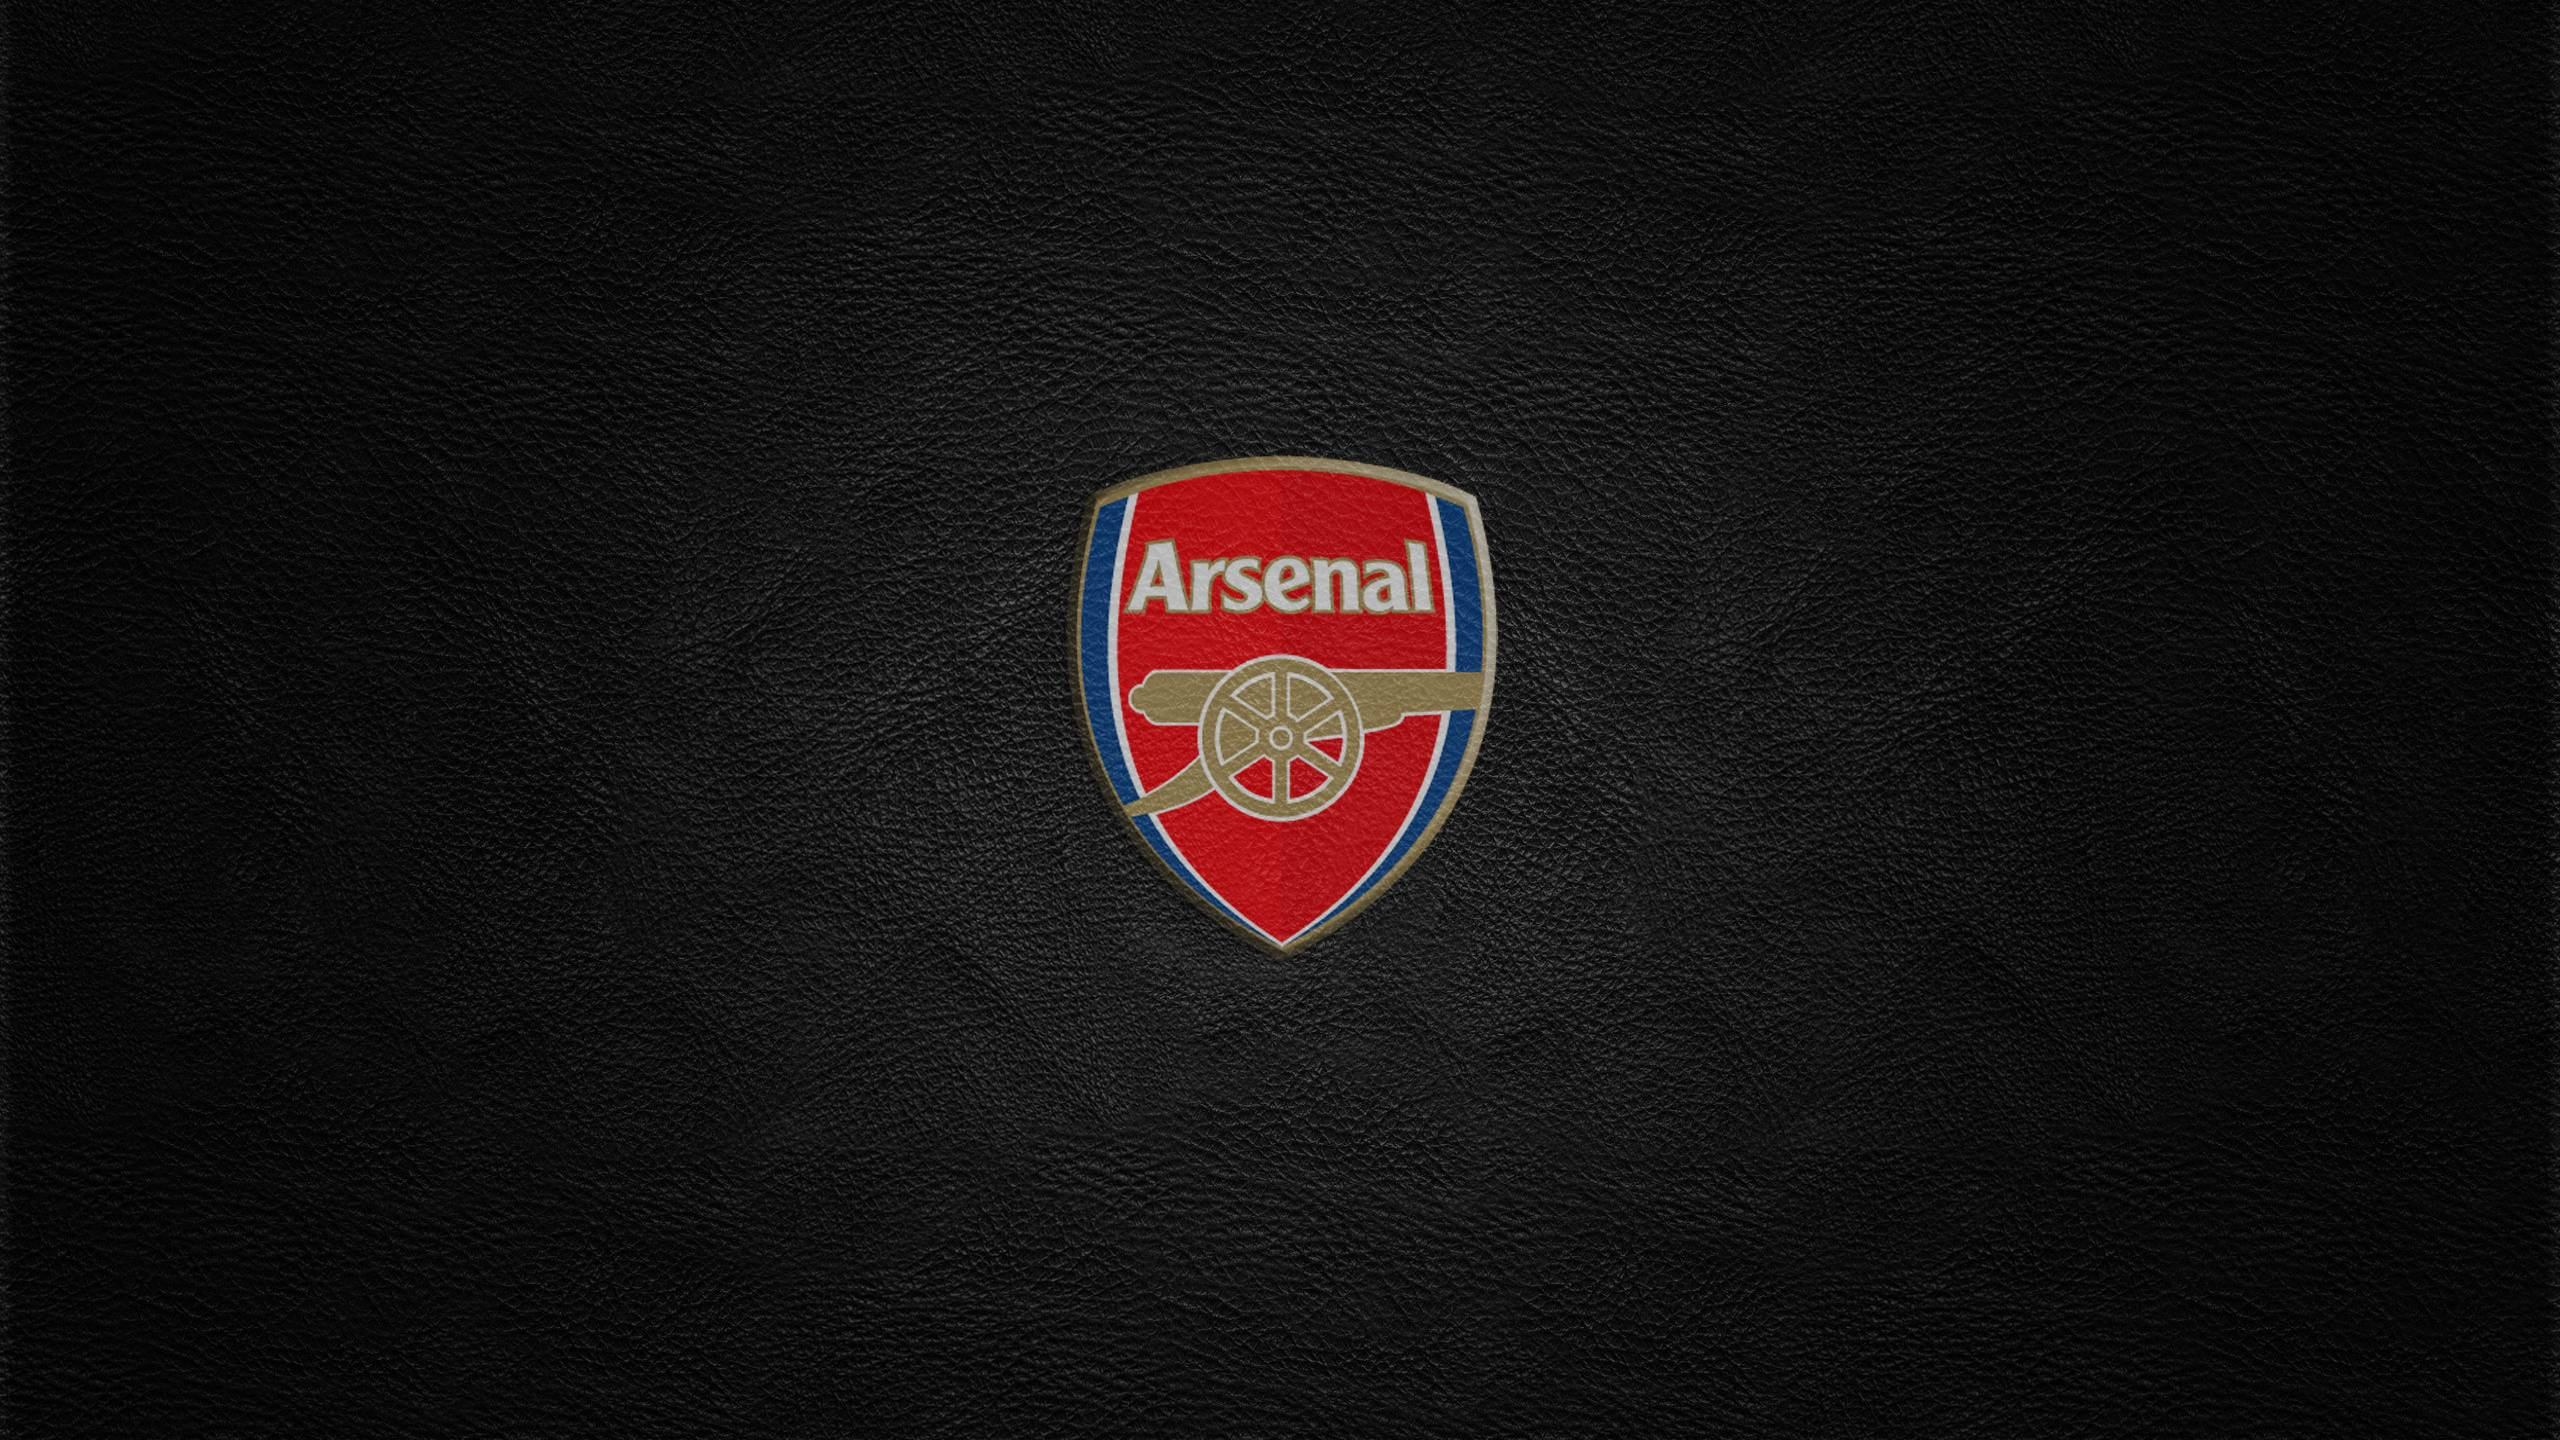 Arsenal Wallpapers - Wallpaper Cave